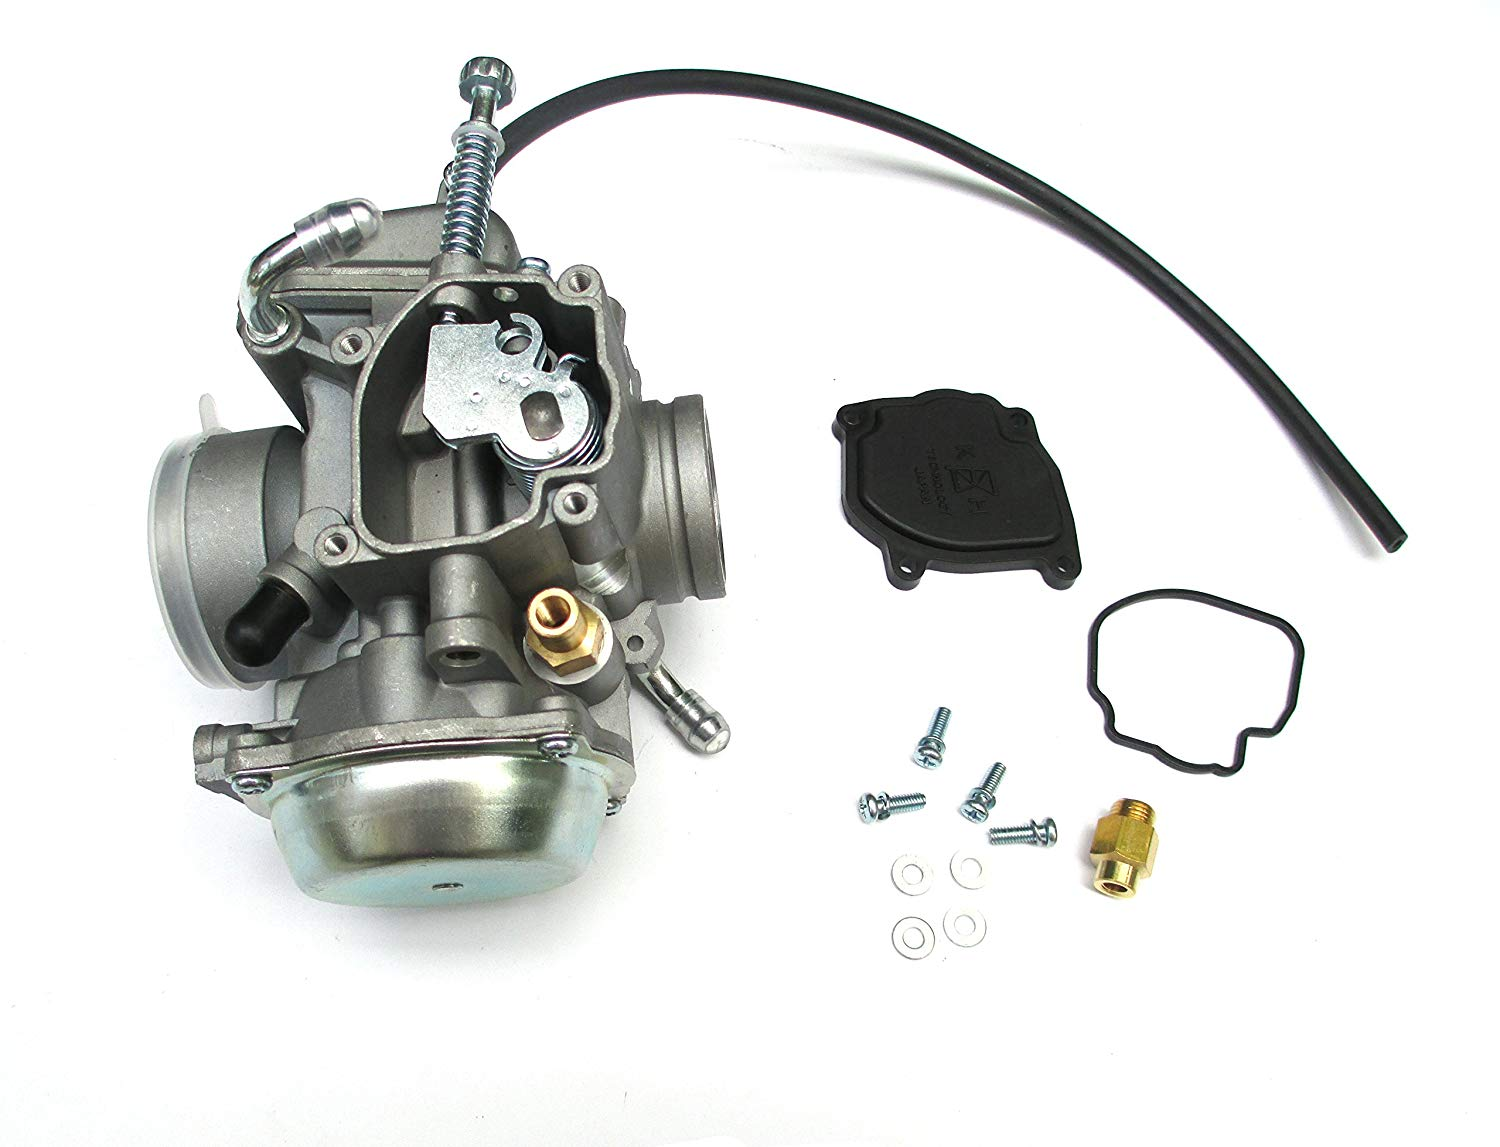 Cheap Polaris 90 Carb, find Polaris 90 Carb deals on line at Alibaba com